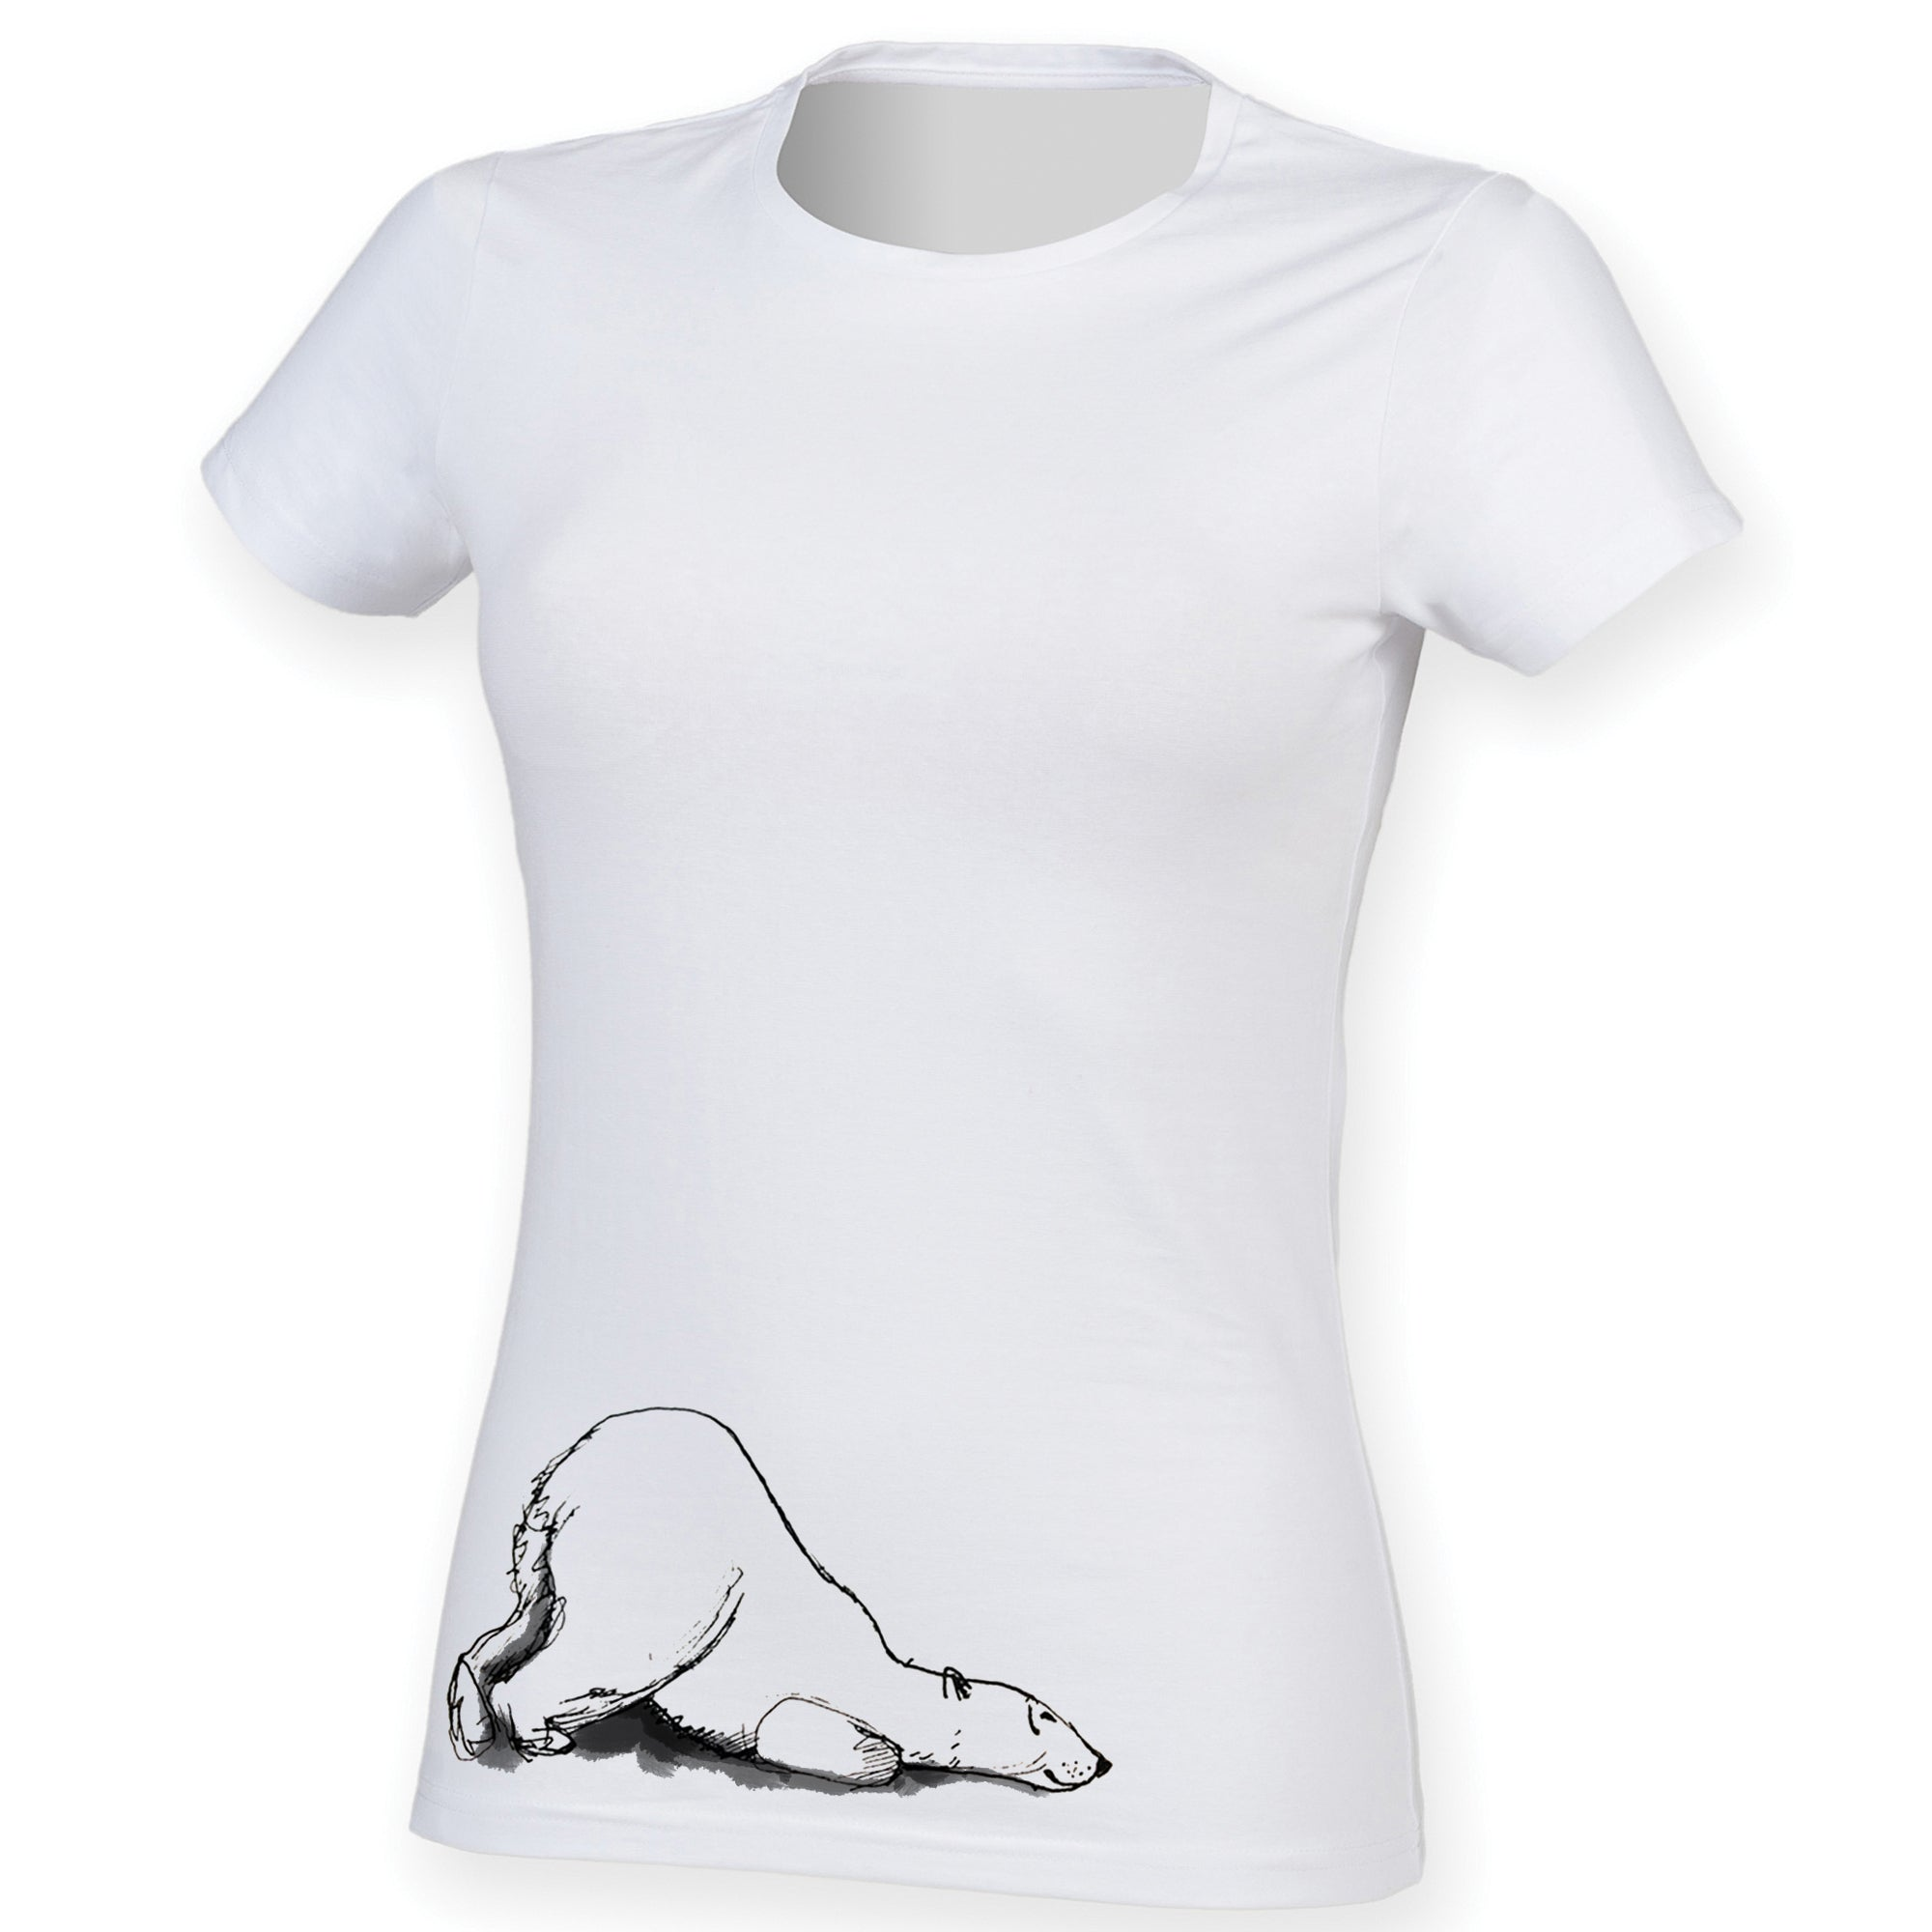 Polar bear women t-shirt